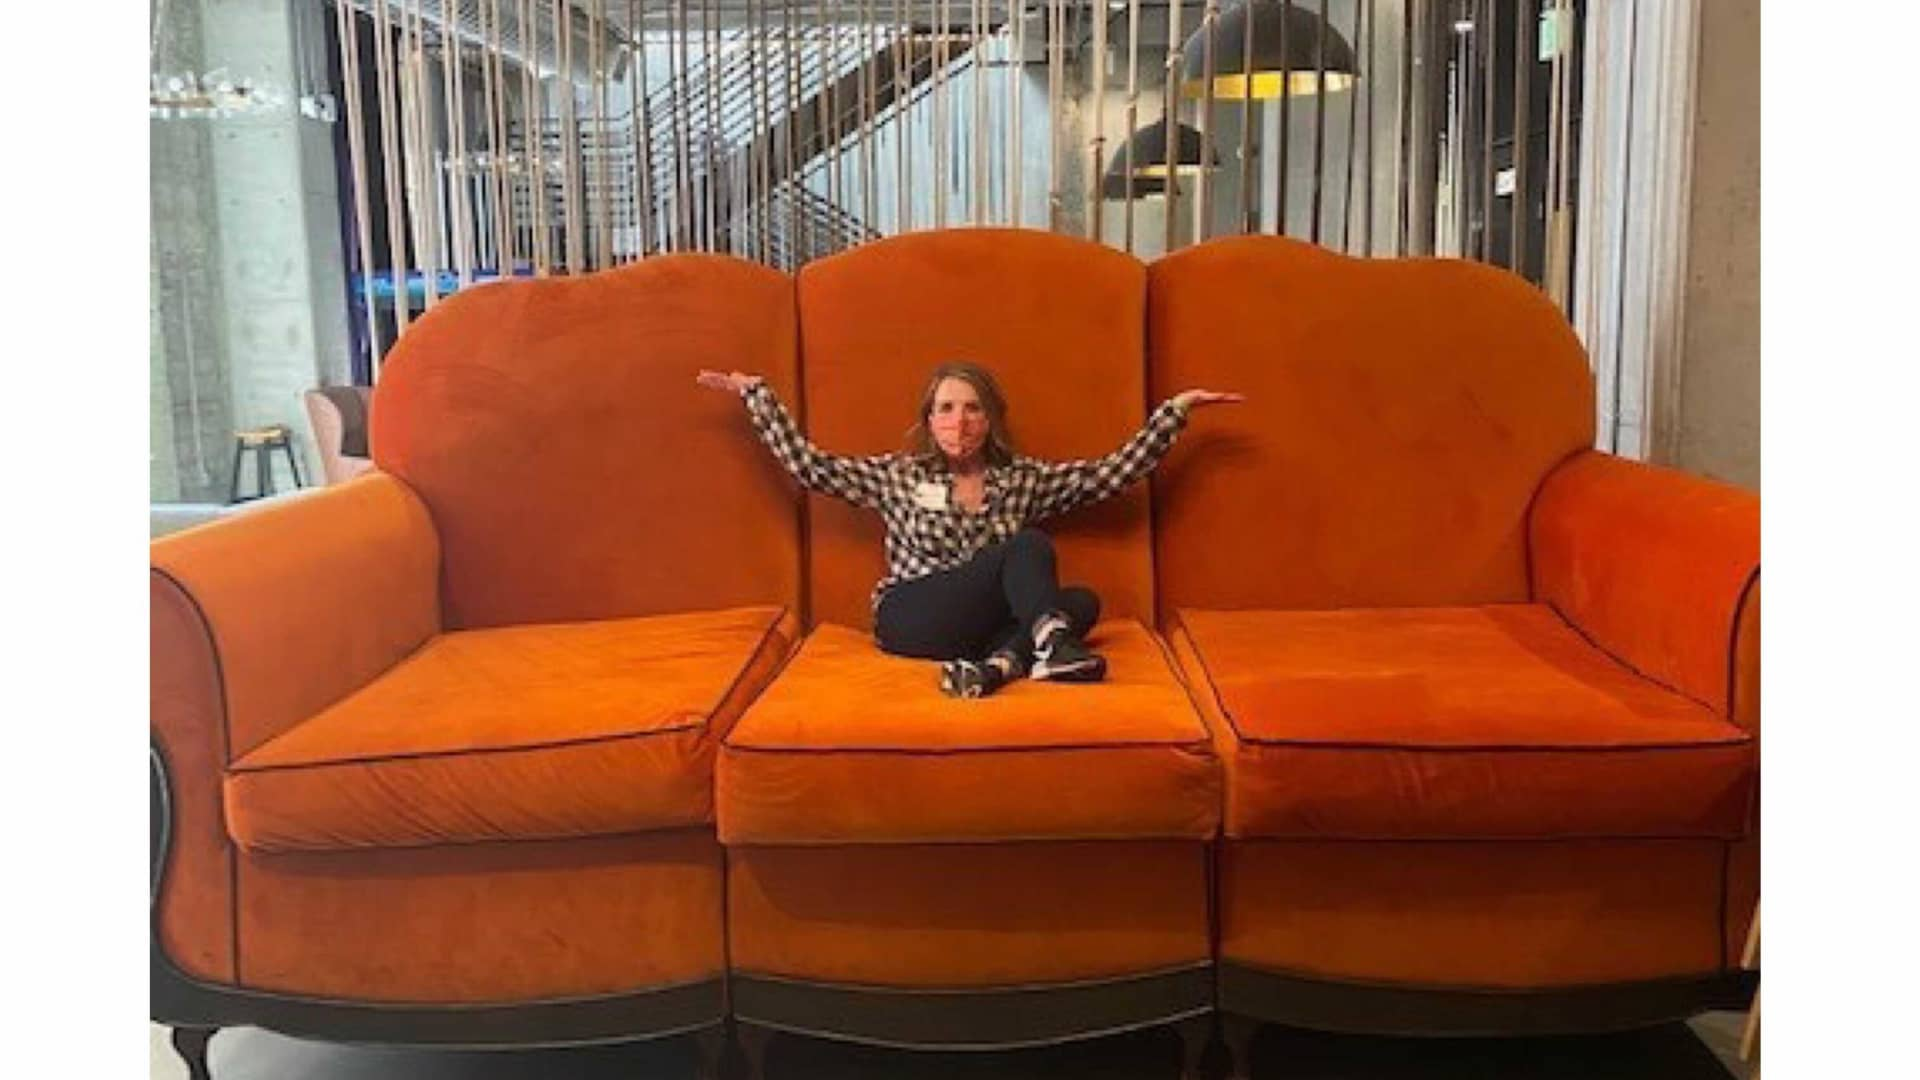 Clear Office founder Brandi Susewitz rests on a larger-than-life chair at Twitch offices in San Francisco.